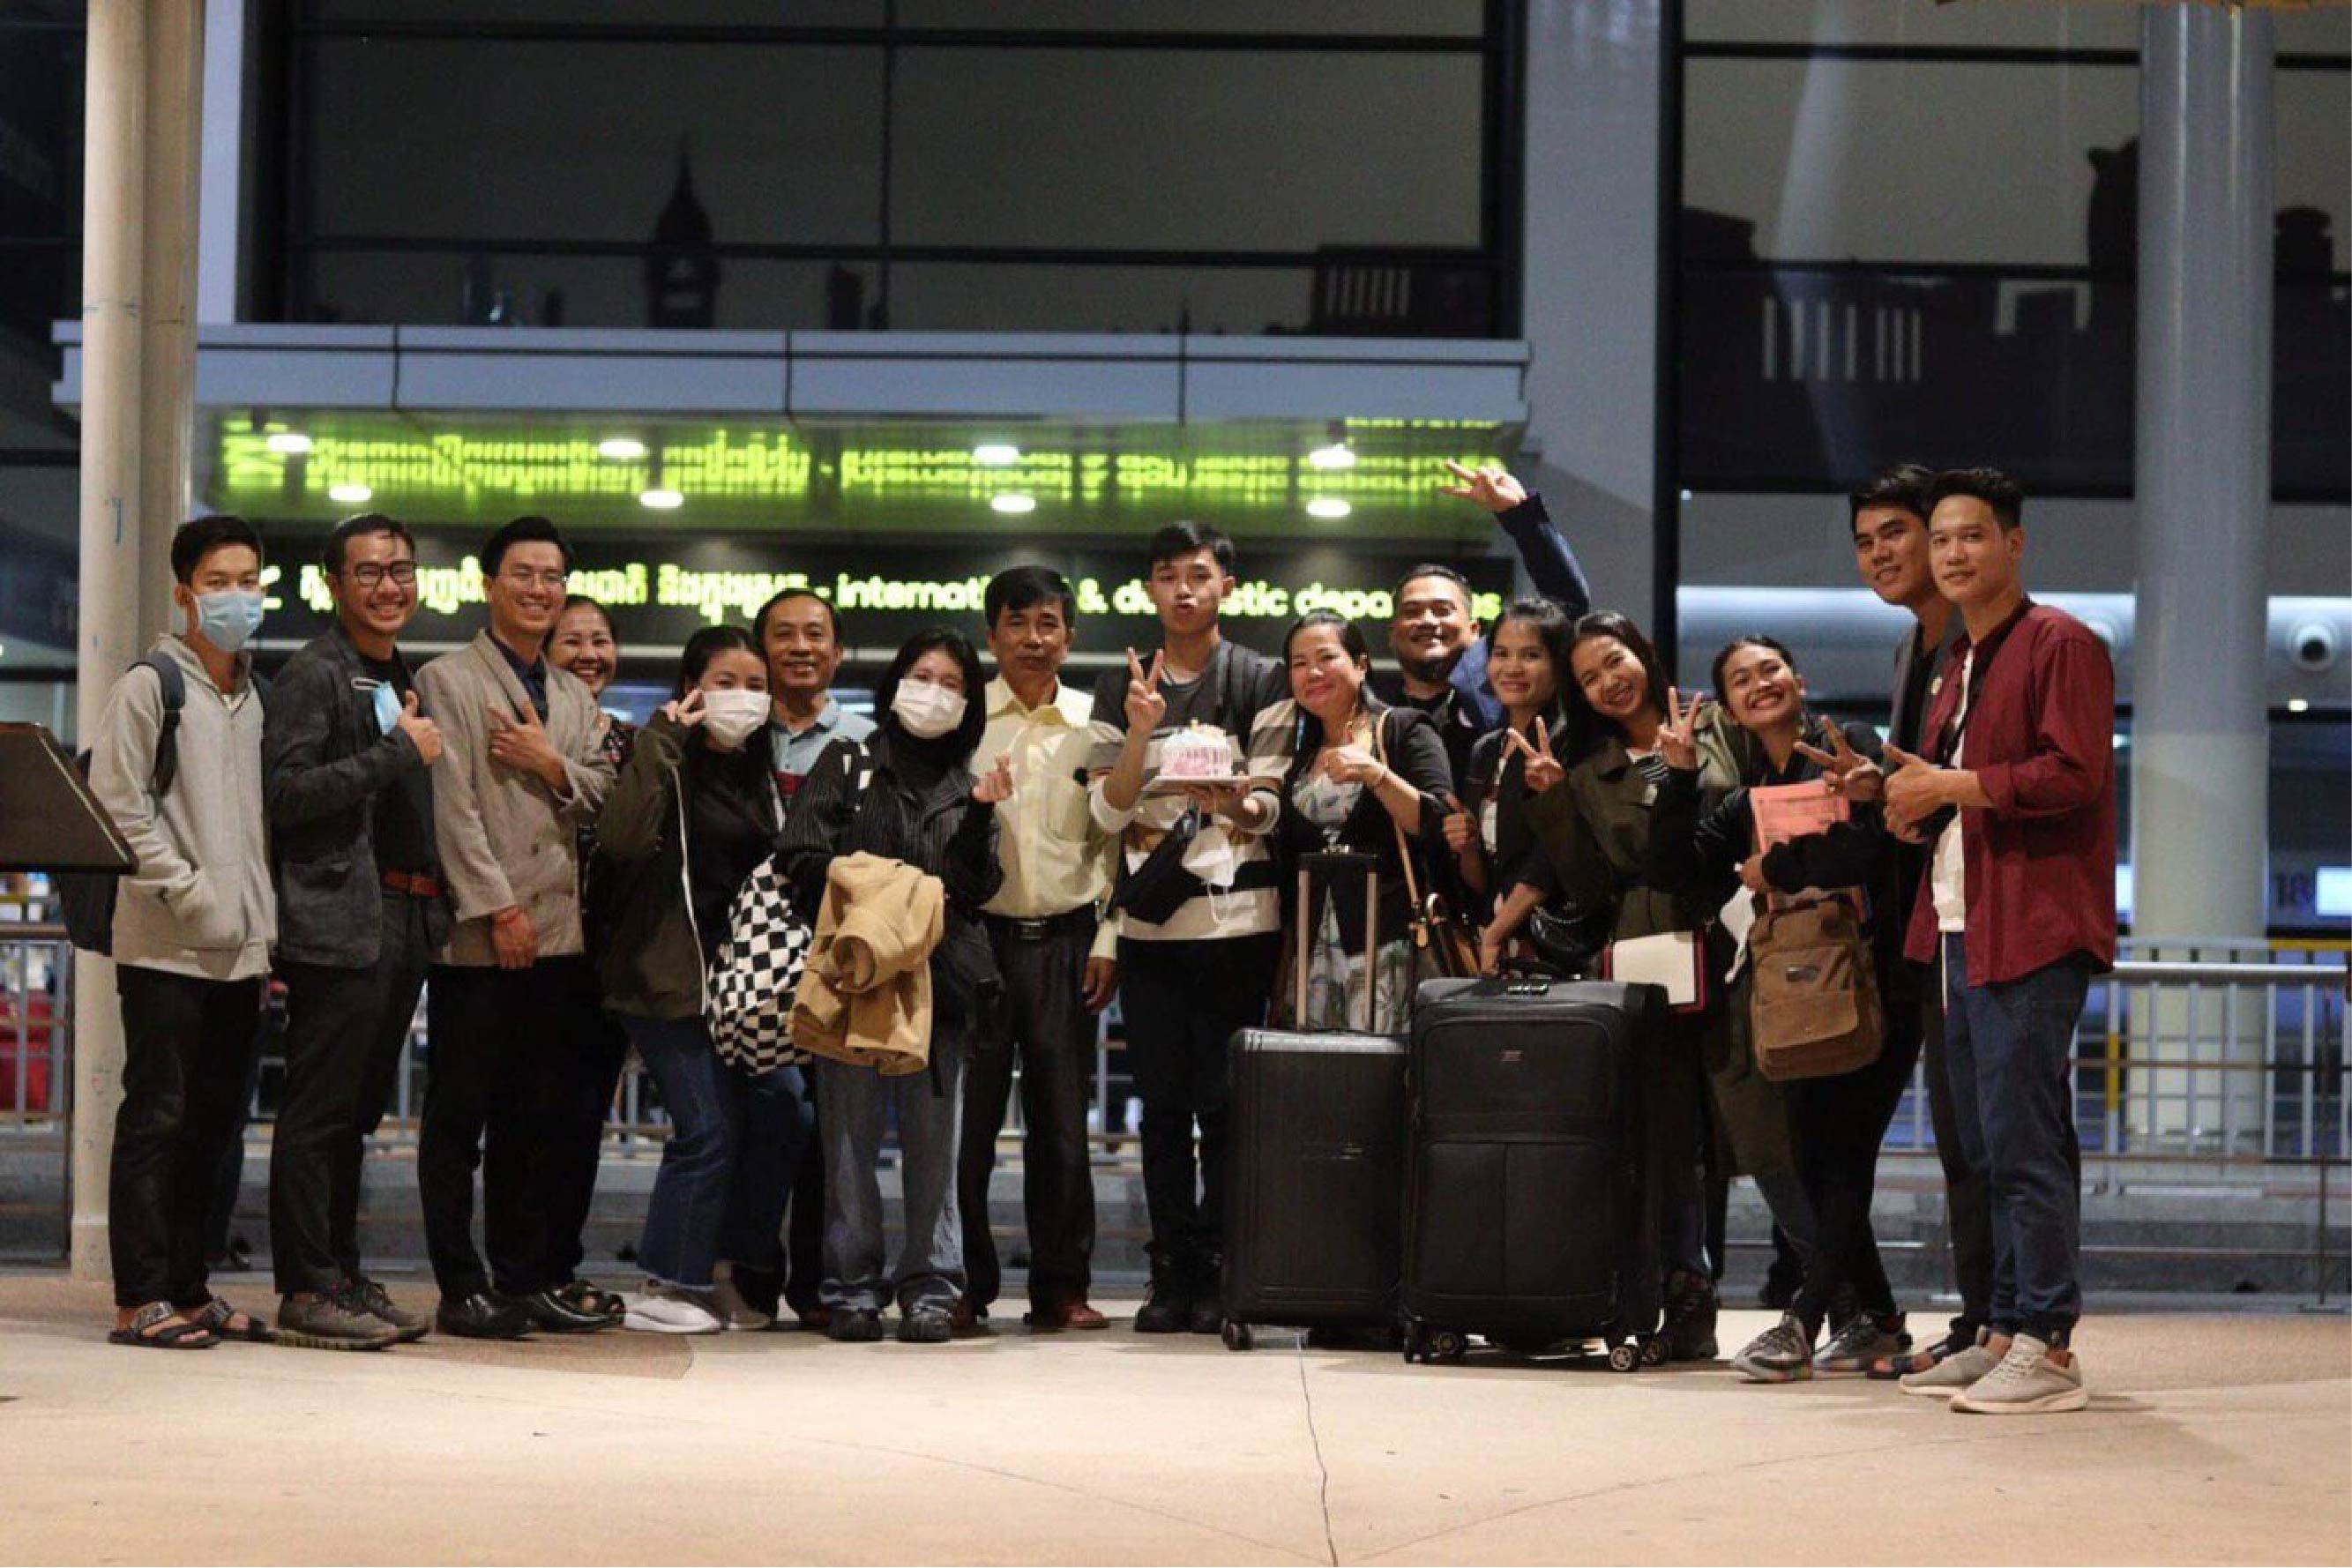 Scholarship Students go to study at Japan